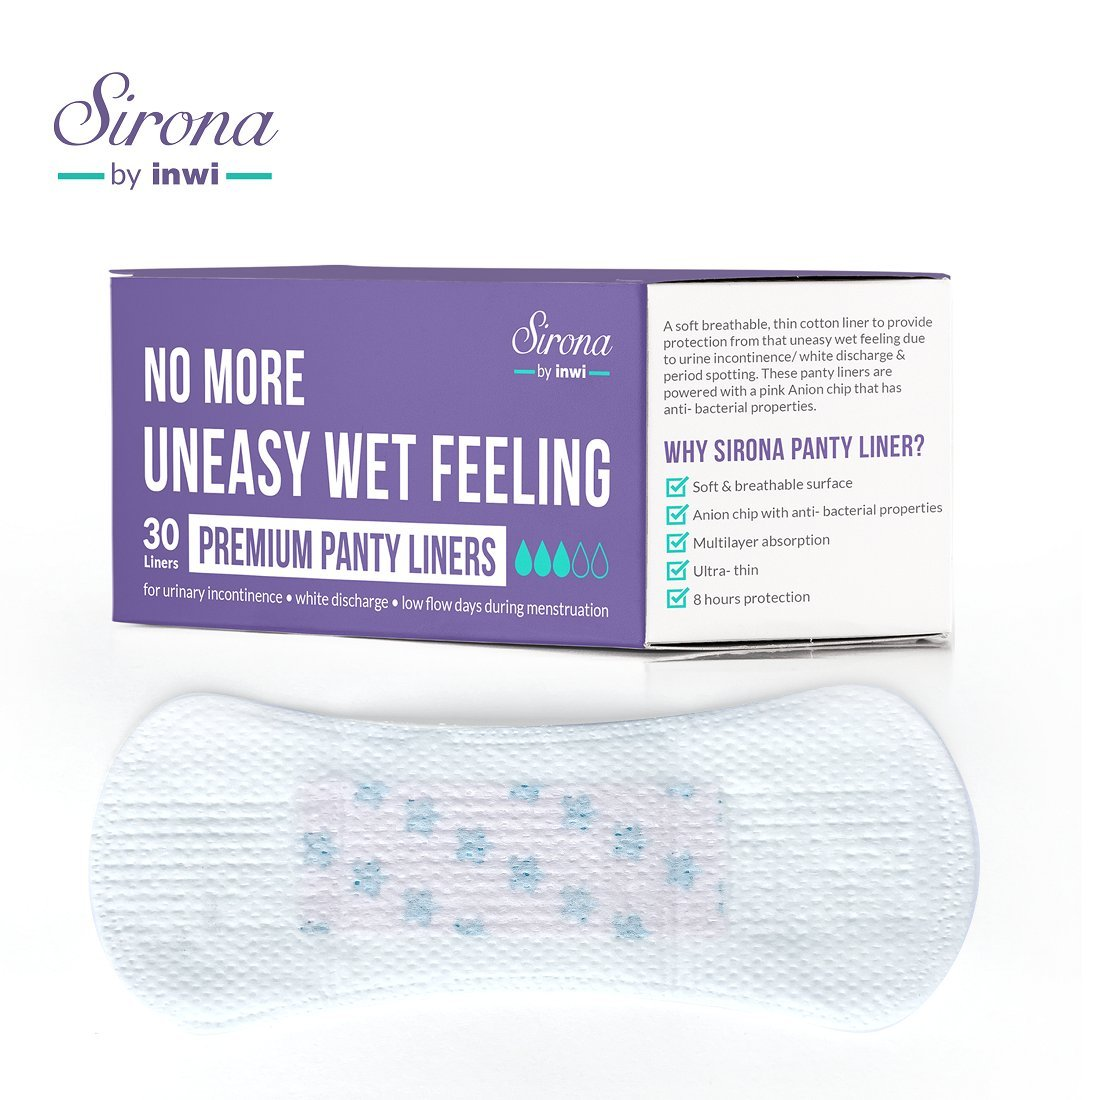 Sirona Ultra Thin Premium Regular Panty Liners - 30 Count product image